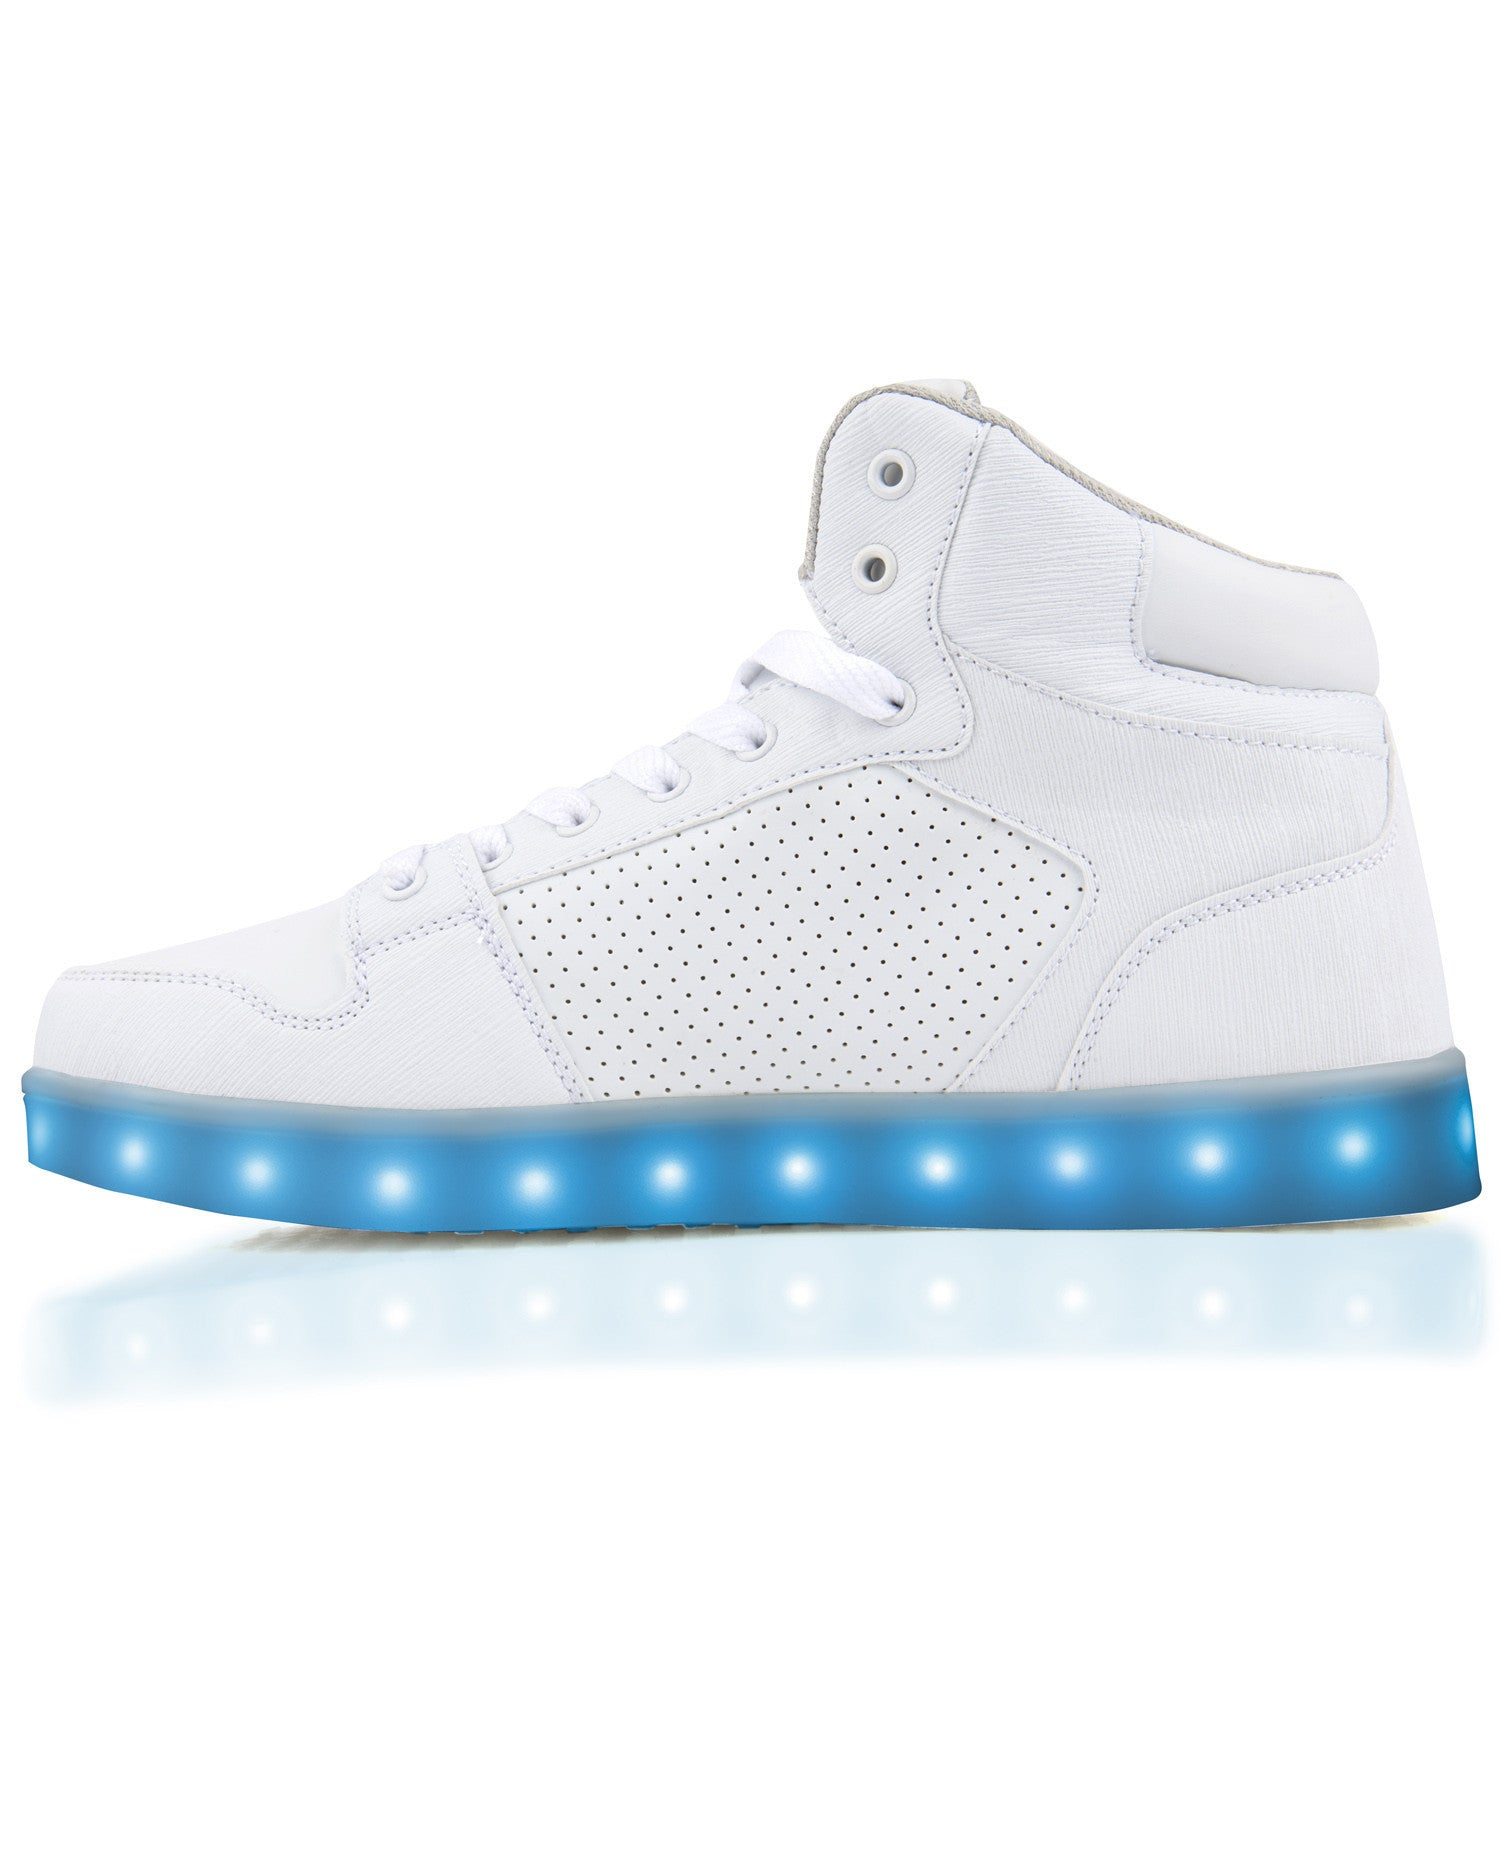 J-Walker - Light Lynk Shoes ( White Leather ) - Electric Styles | World's Number 1 Light Up Shoe Store - {product_type}} -  - 7